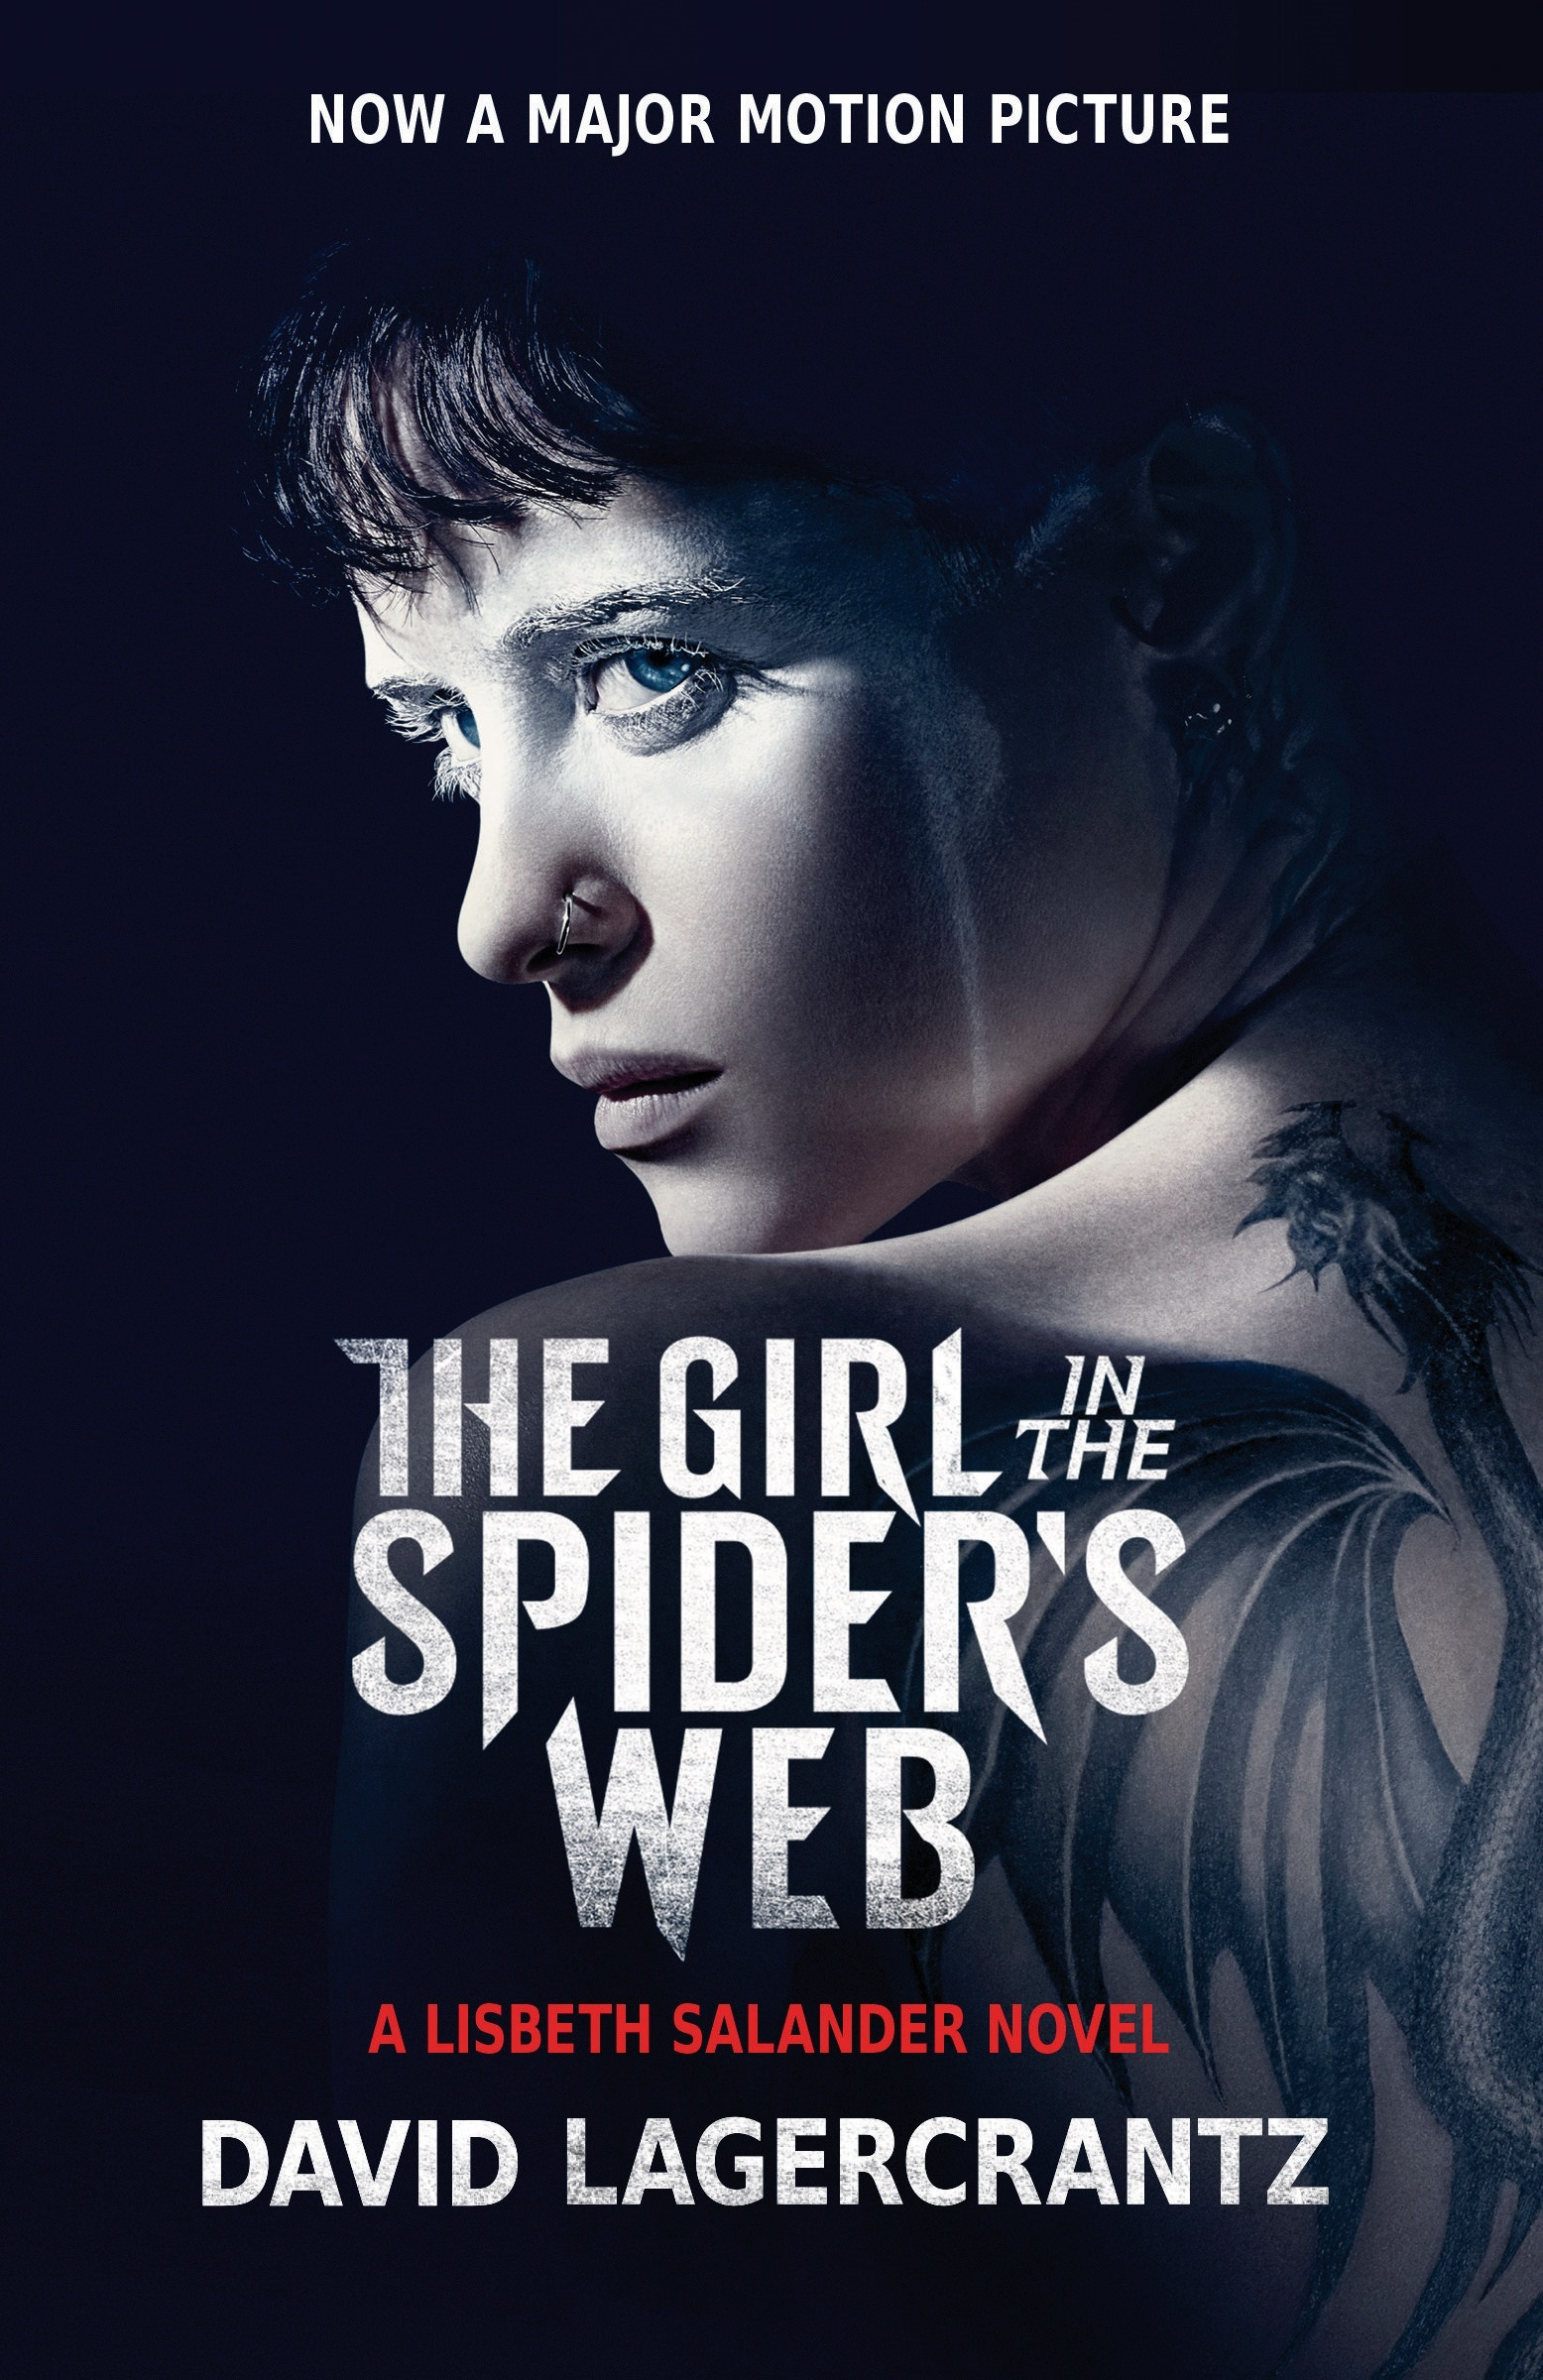 The Girl in the Spider's Web (Movie Tie-In): A Lisbeth Salander Novel, Continuing Stieg Larsson's Millennium Series